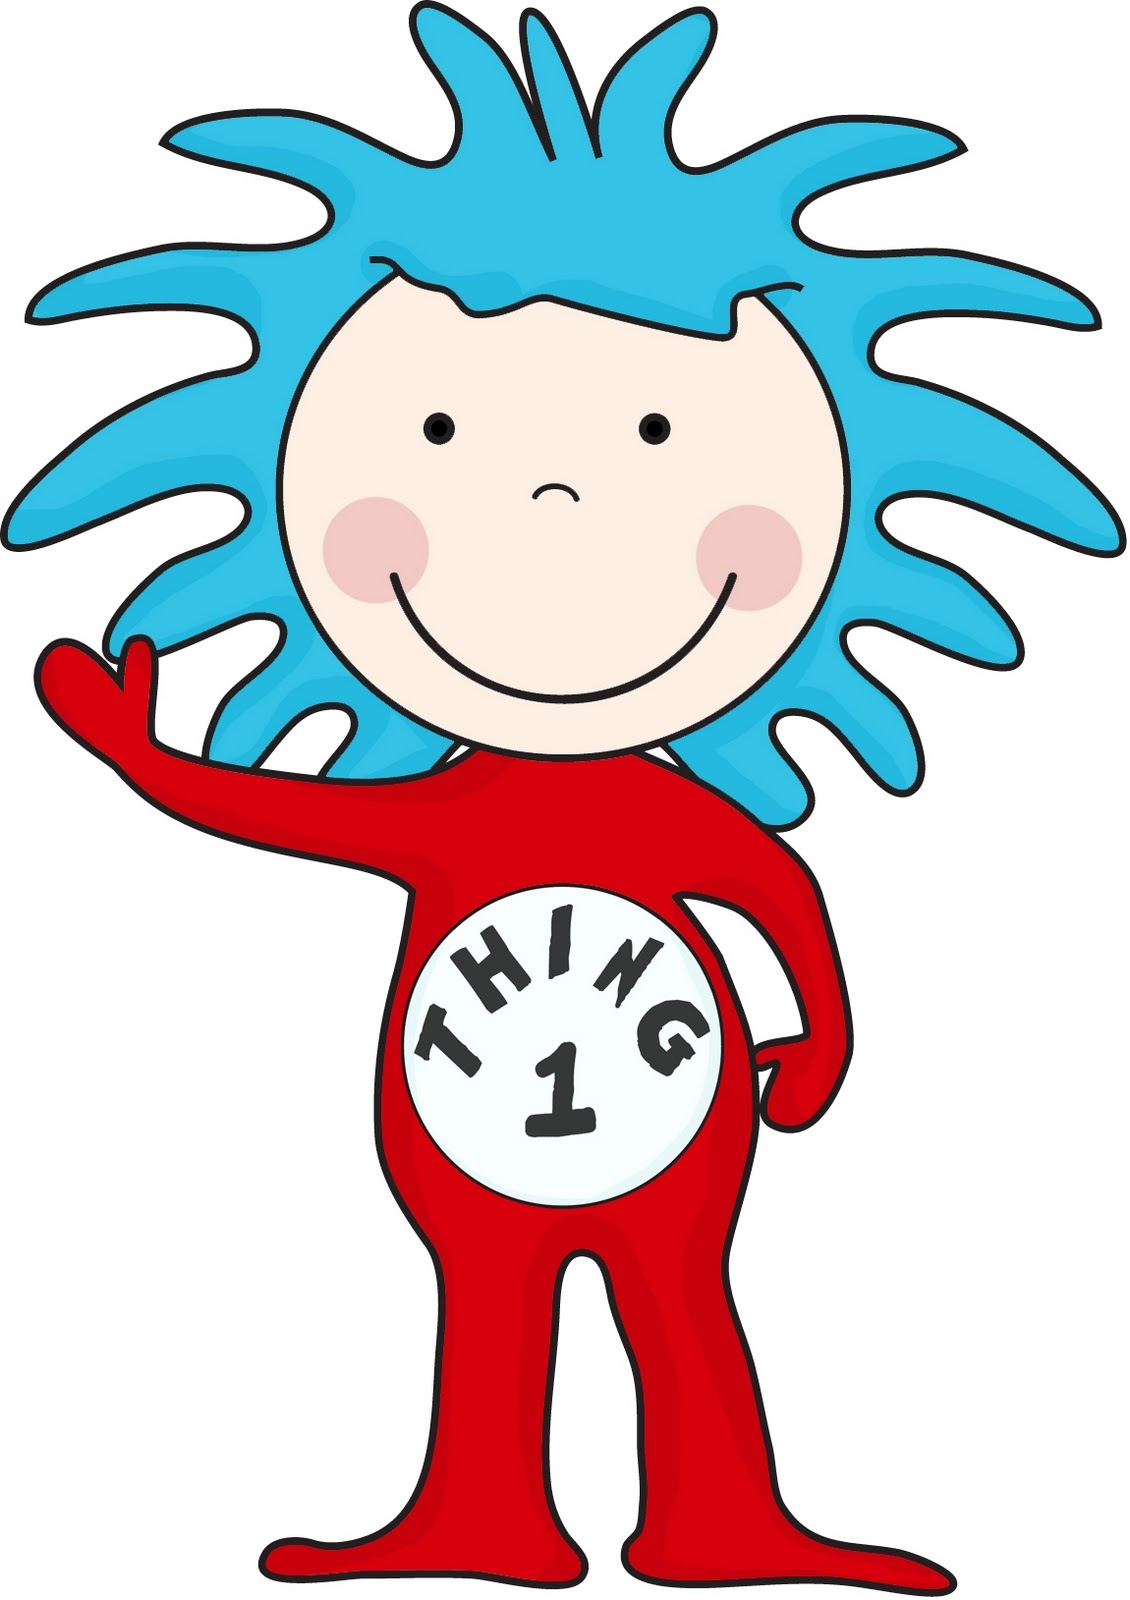 1130x1600 Thing 1 And Thing 2 Cat In The Hat Clipart